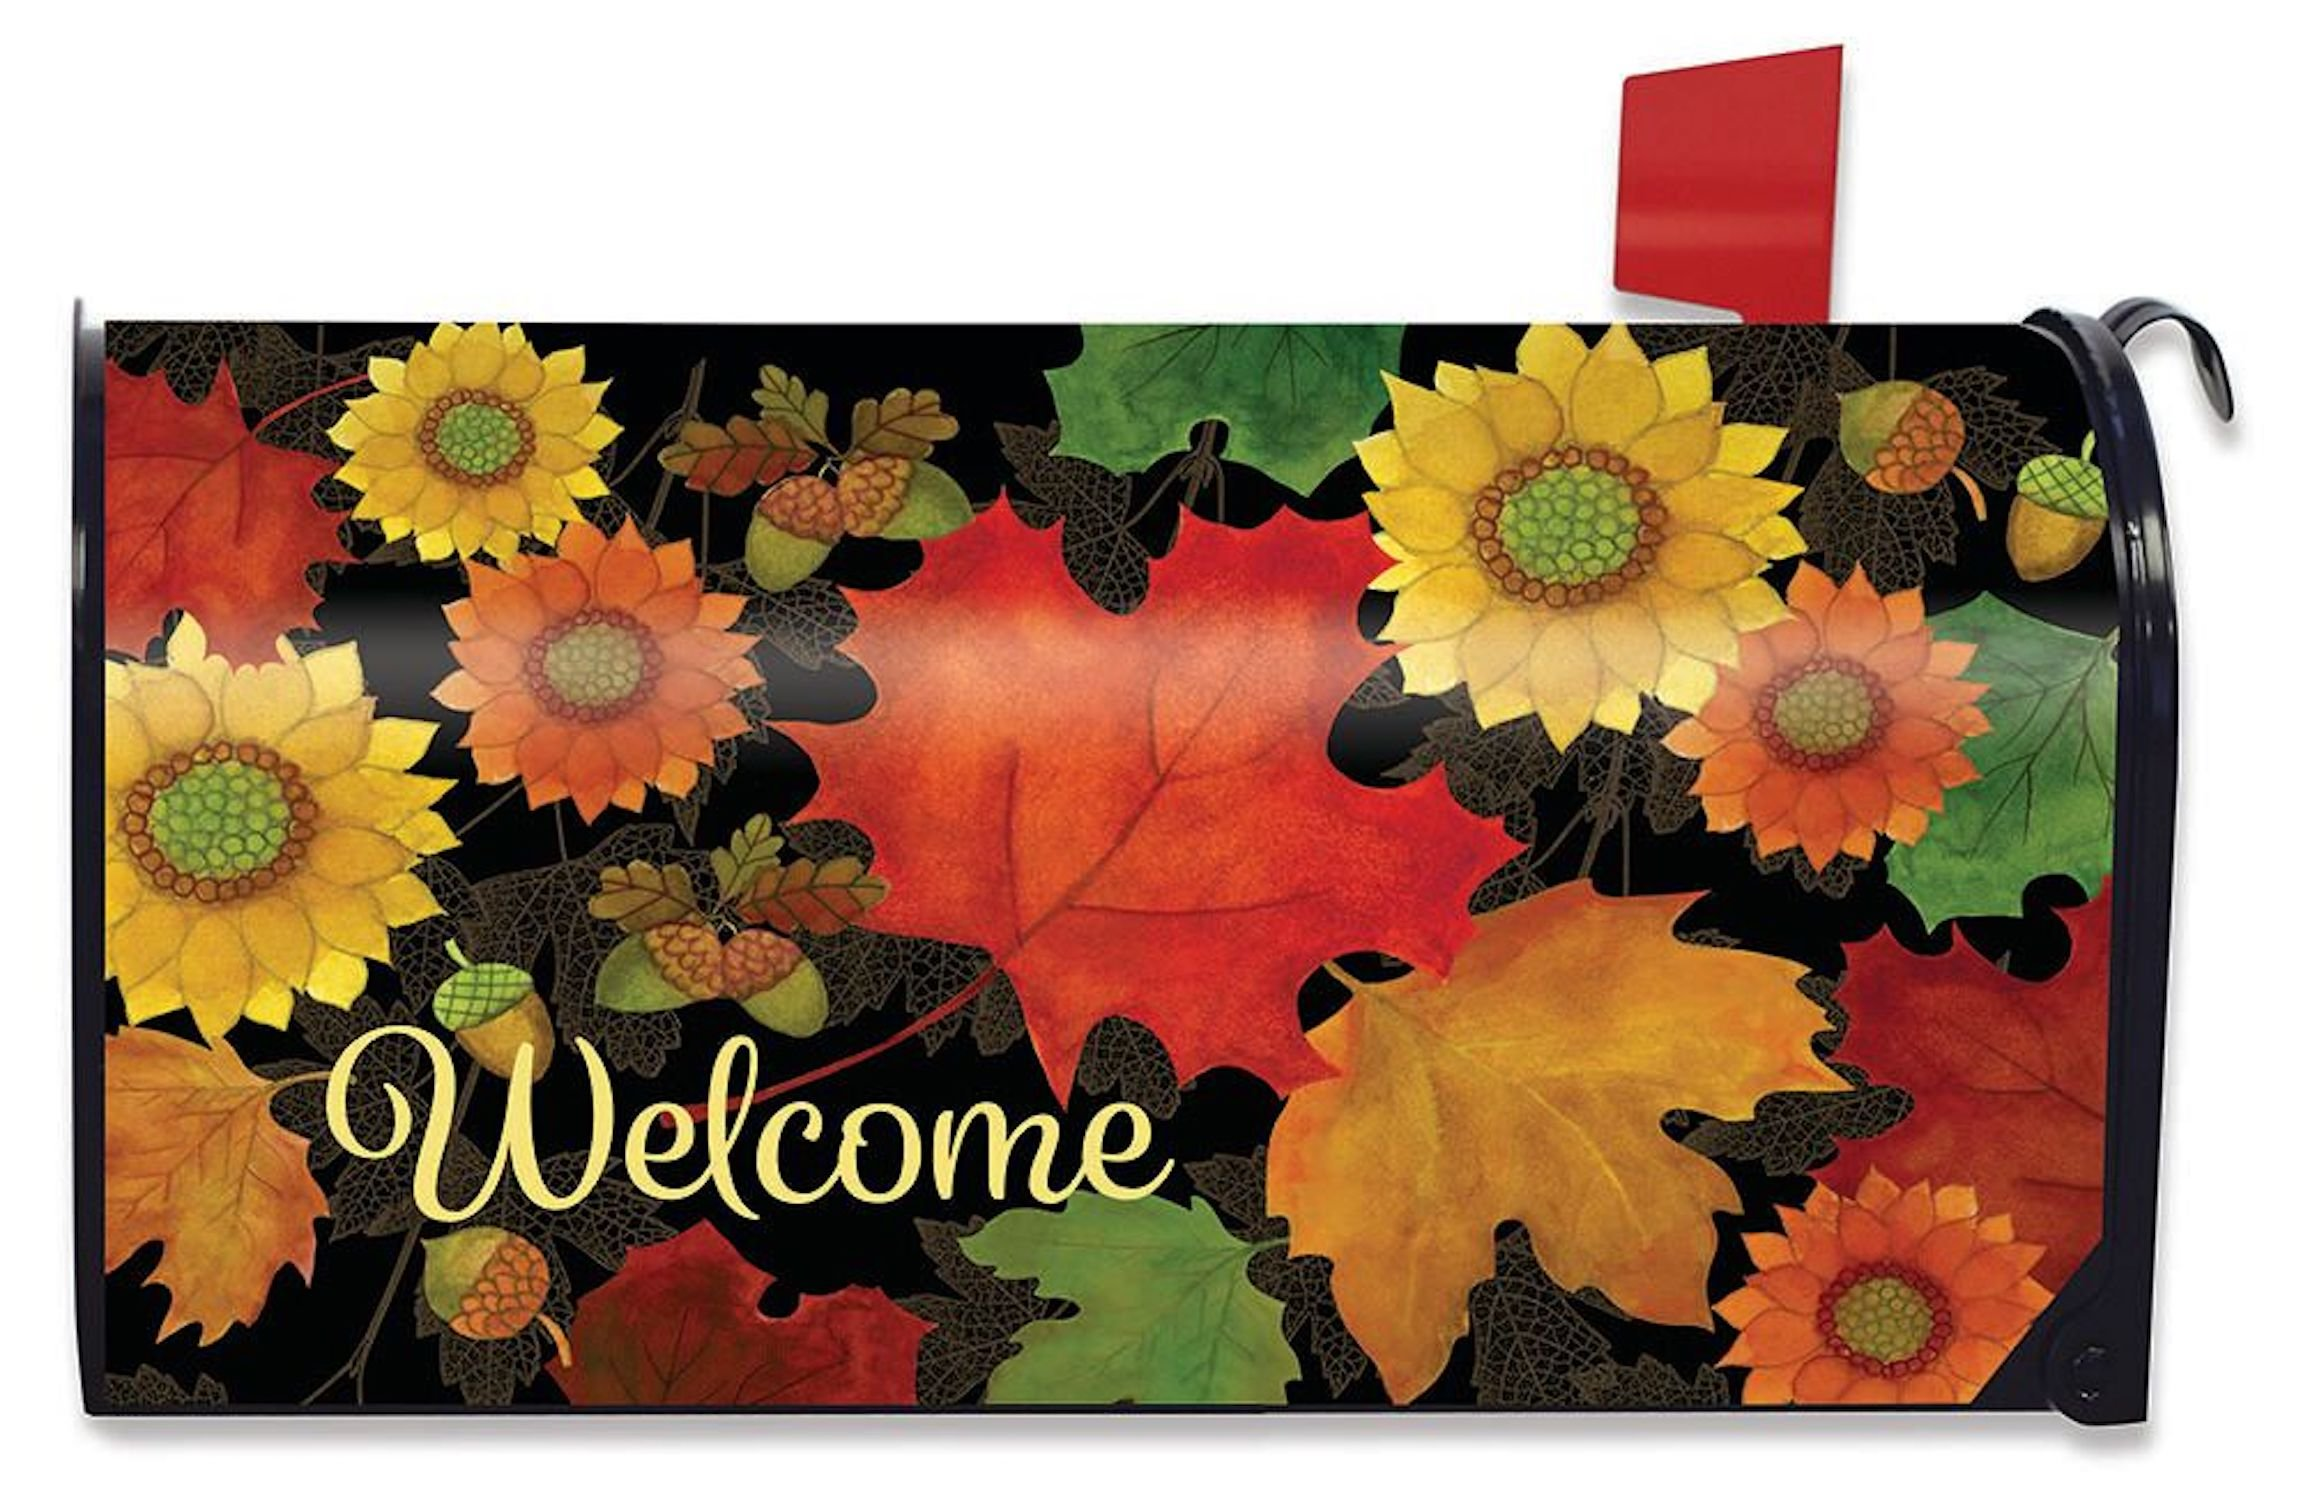 Briarwood Lane Fall Foliage Welcome Large Mailbox Cover Primitive Autumn Leaves Oversized by Briarwood Lane